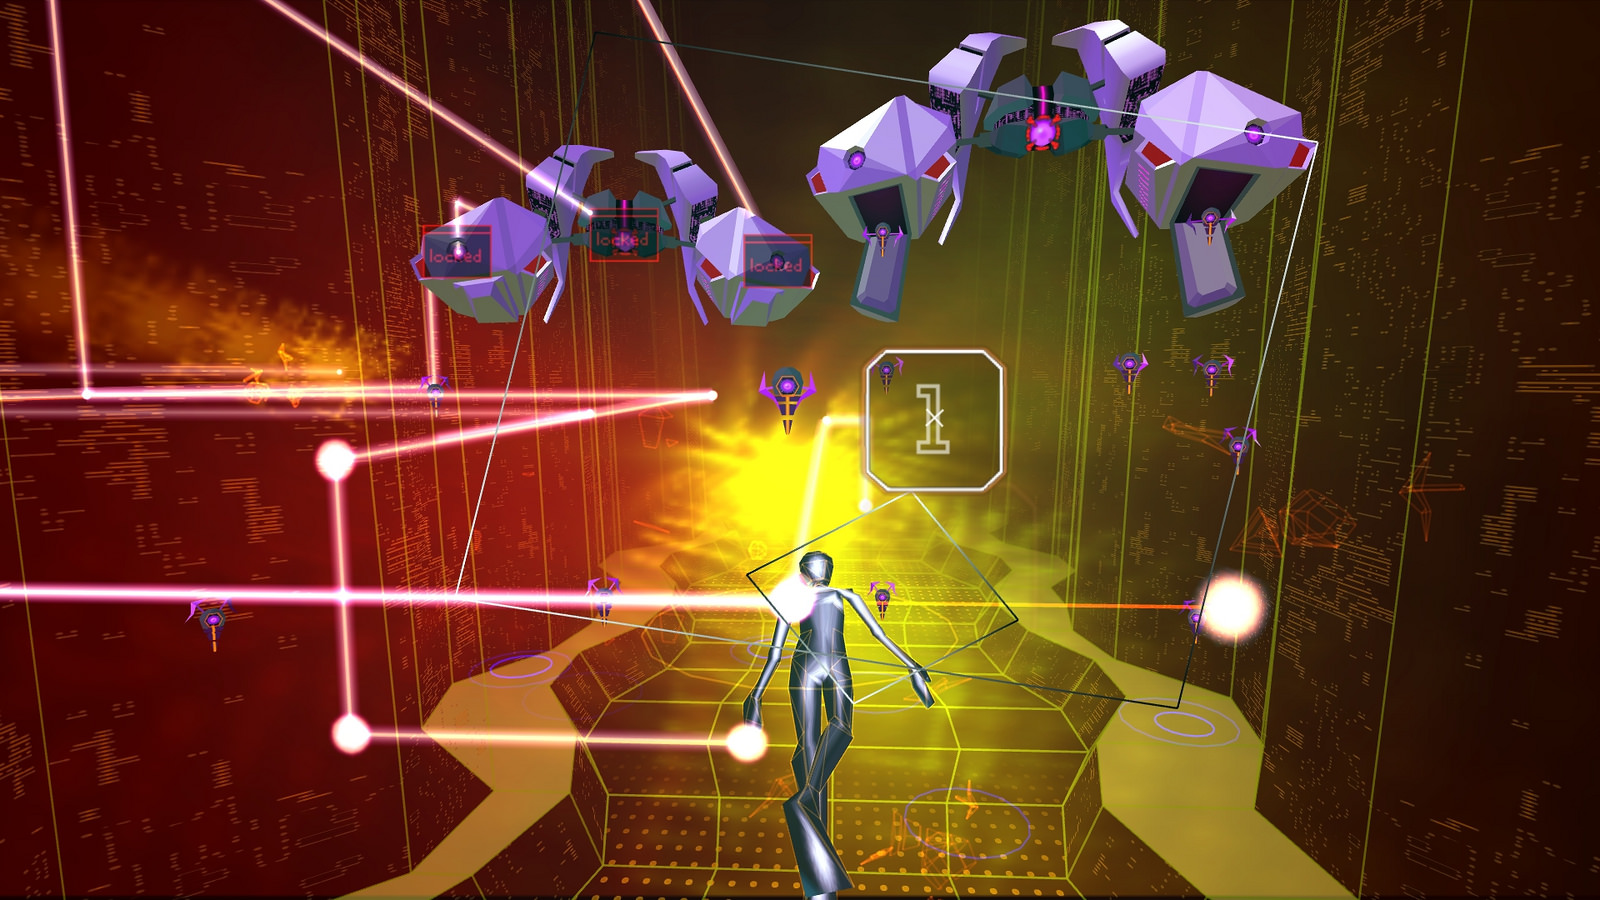 Rez Infinite Announced For PlayStation VR But Can Be